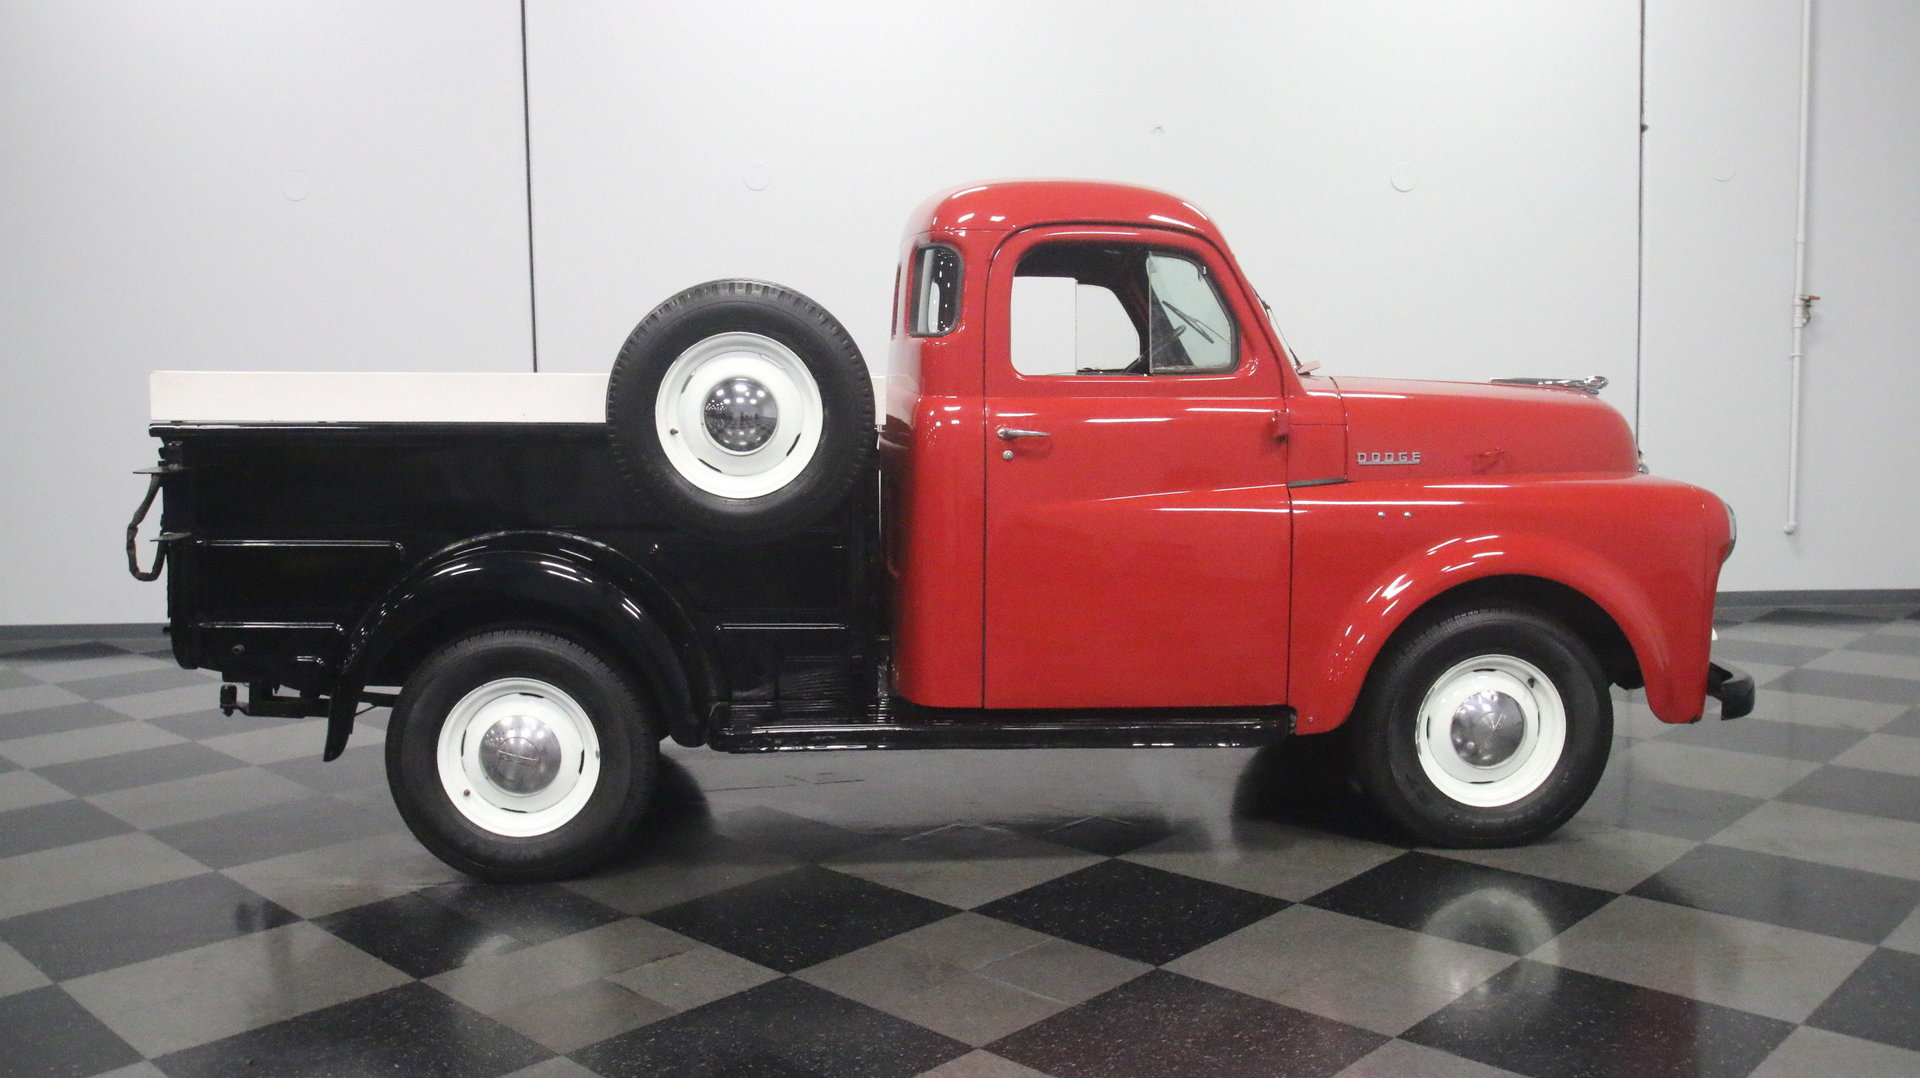 1950 Dodge B Series Truck For Sale 99732 Mcg 1950s Cars